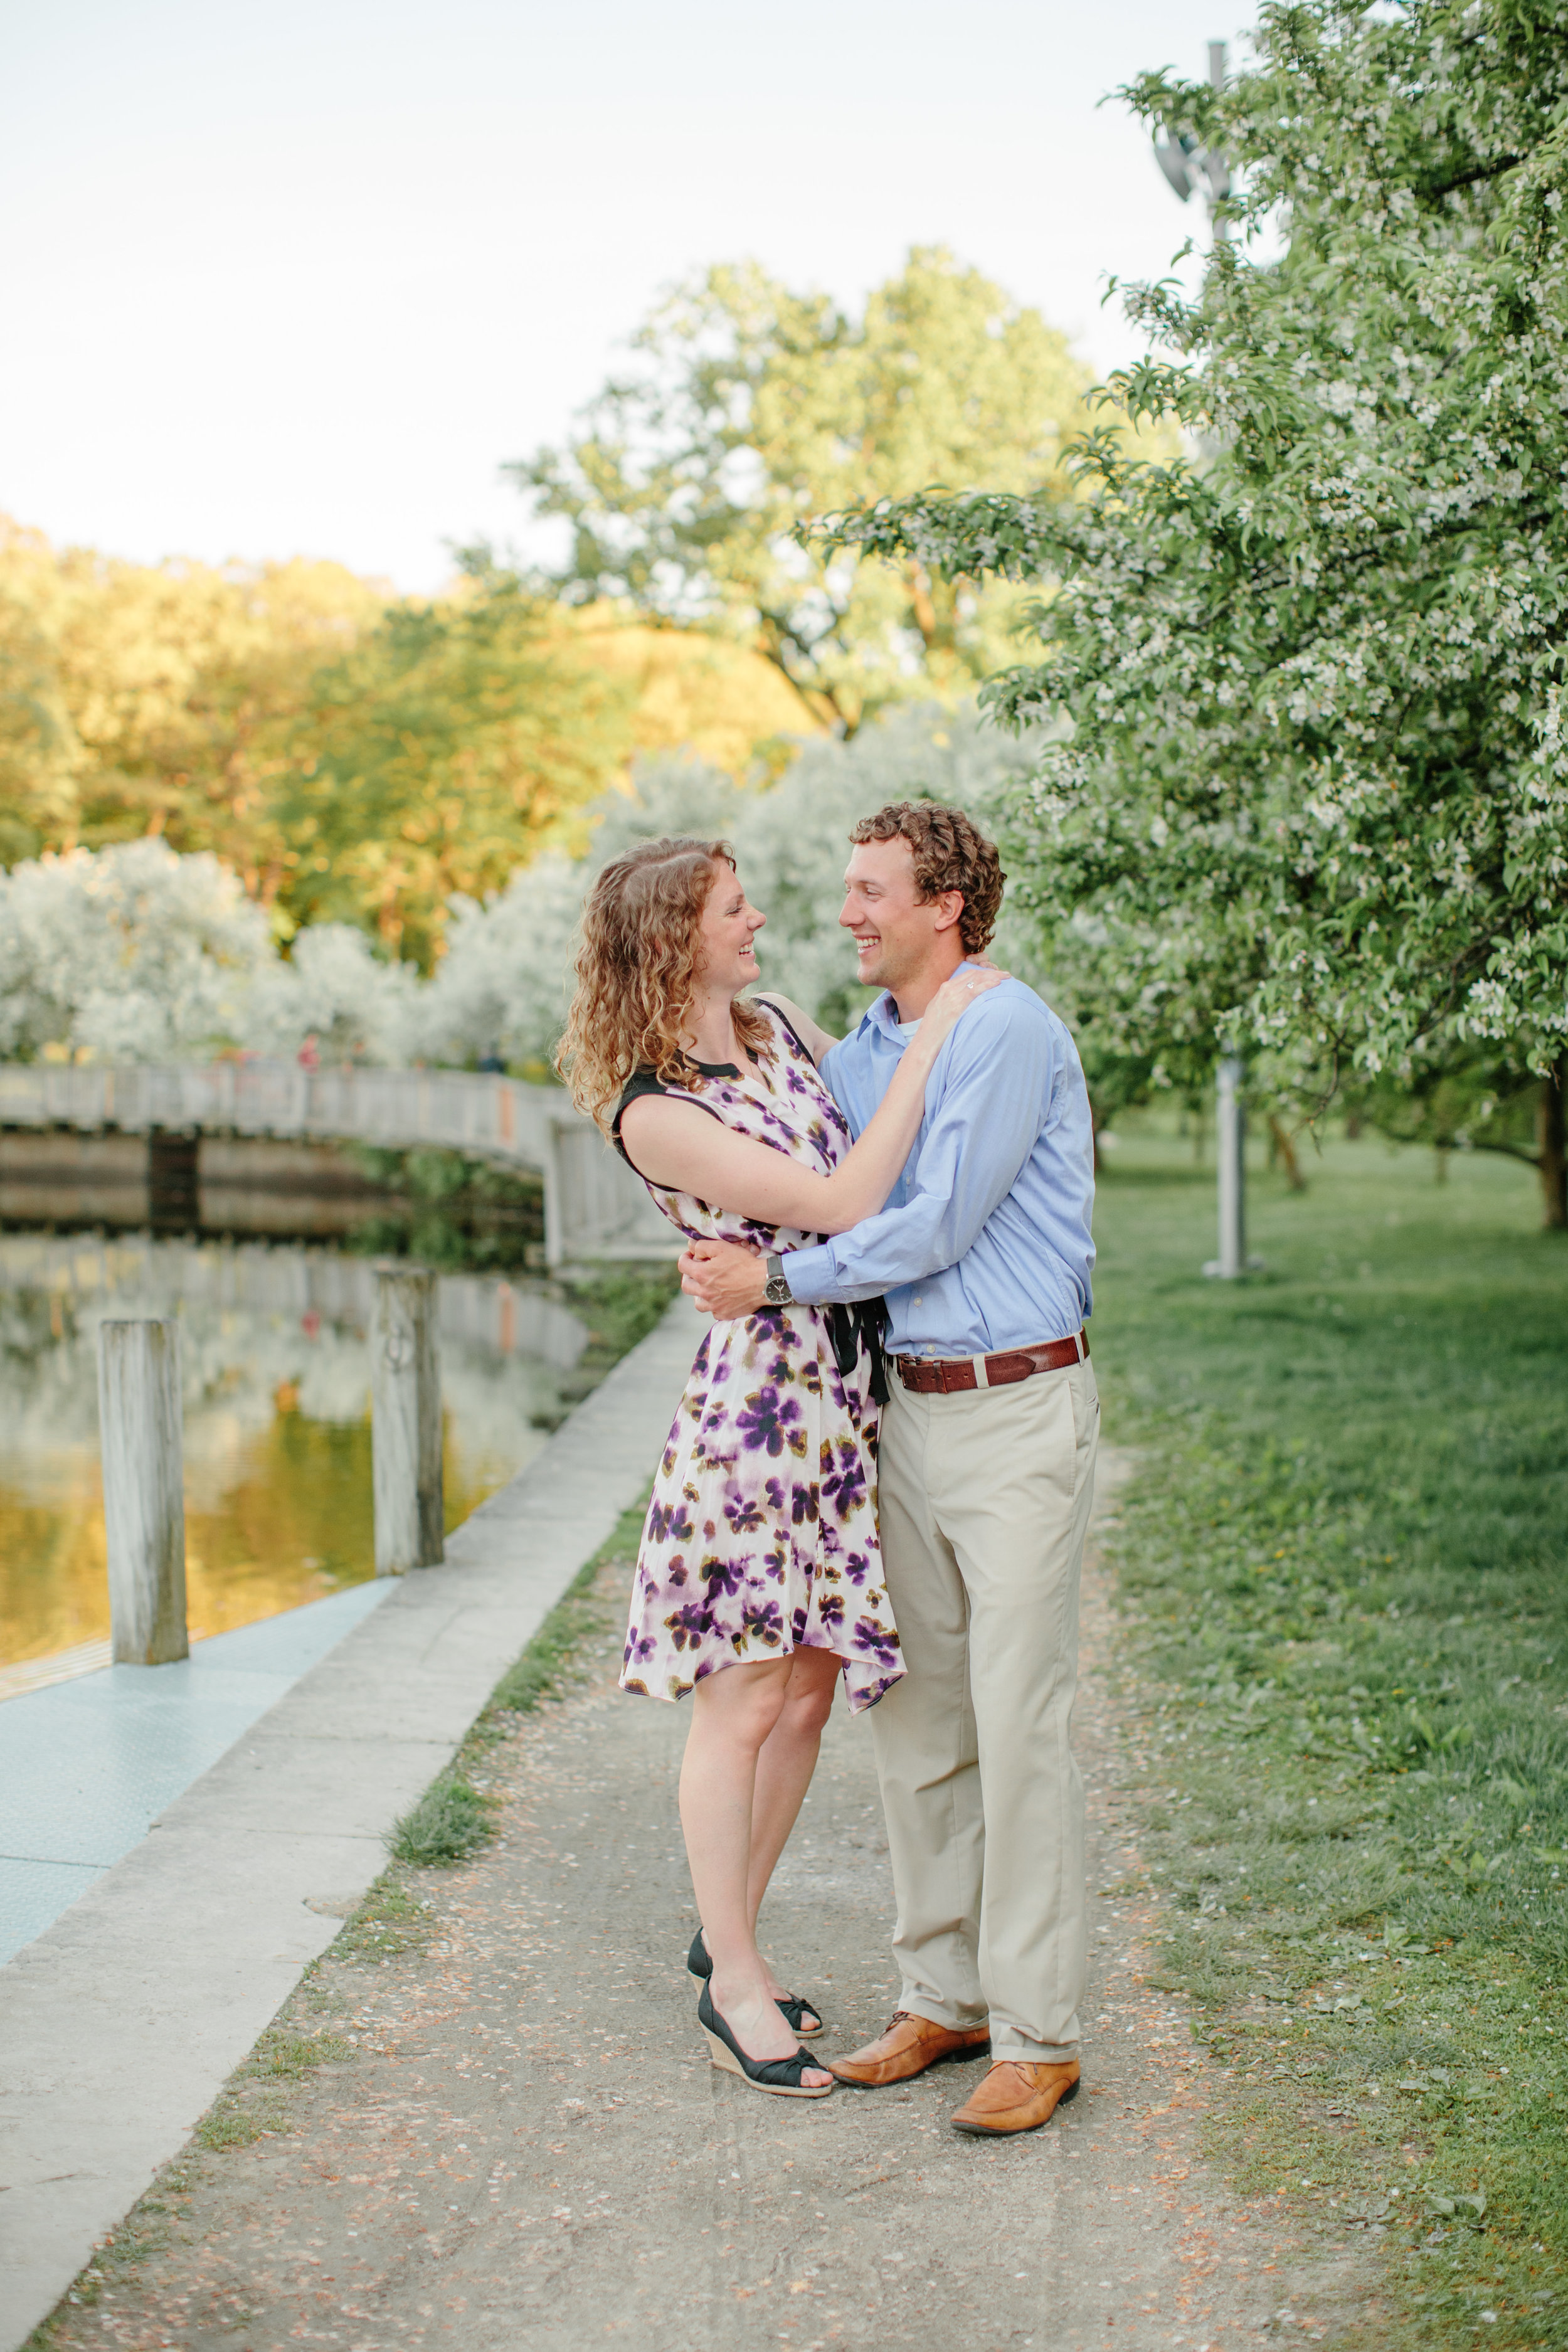 I had so much fun exploring downtown Des Moines for photos with you two. What a great spring engagement session!